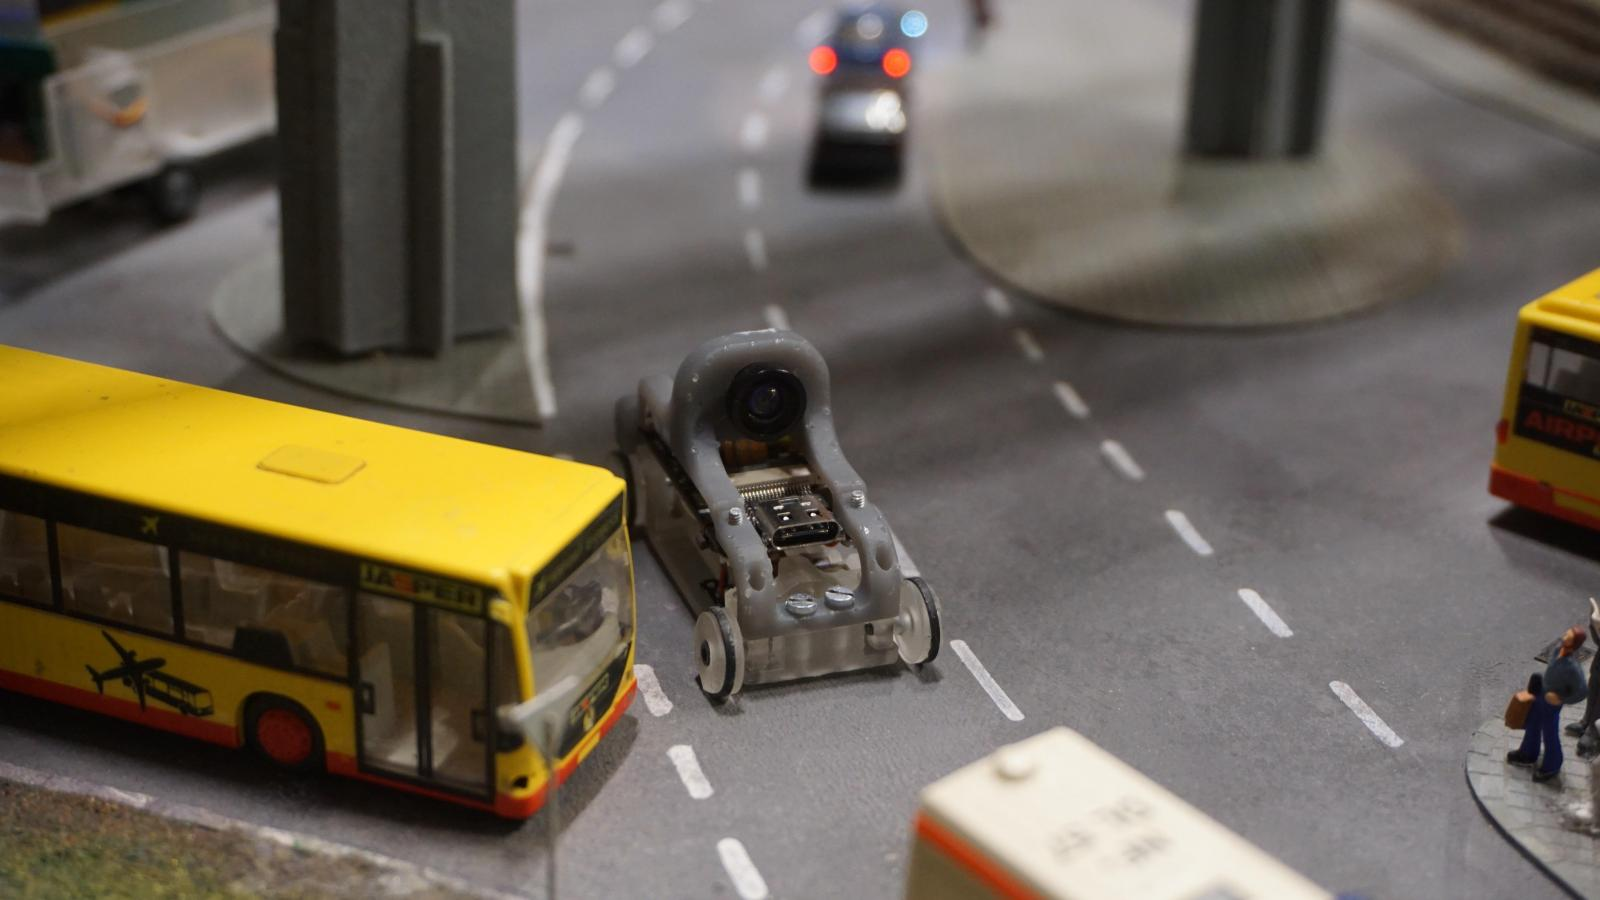 Miniatur Wunderland's depiction of HAW's collaborations